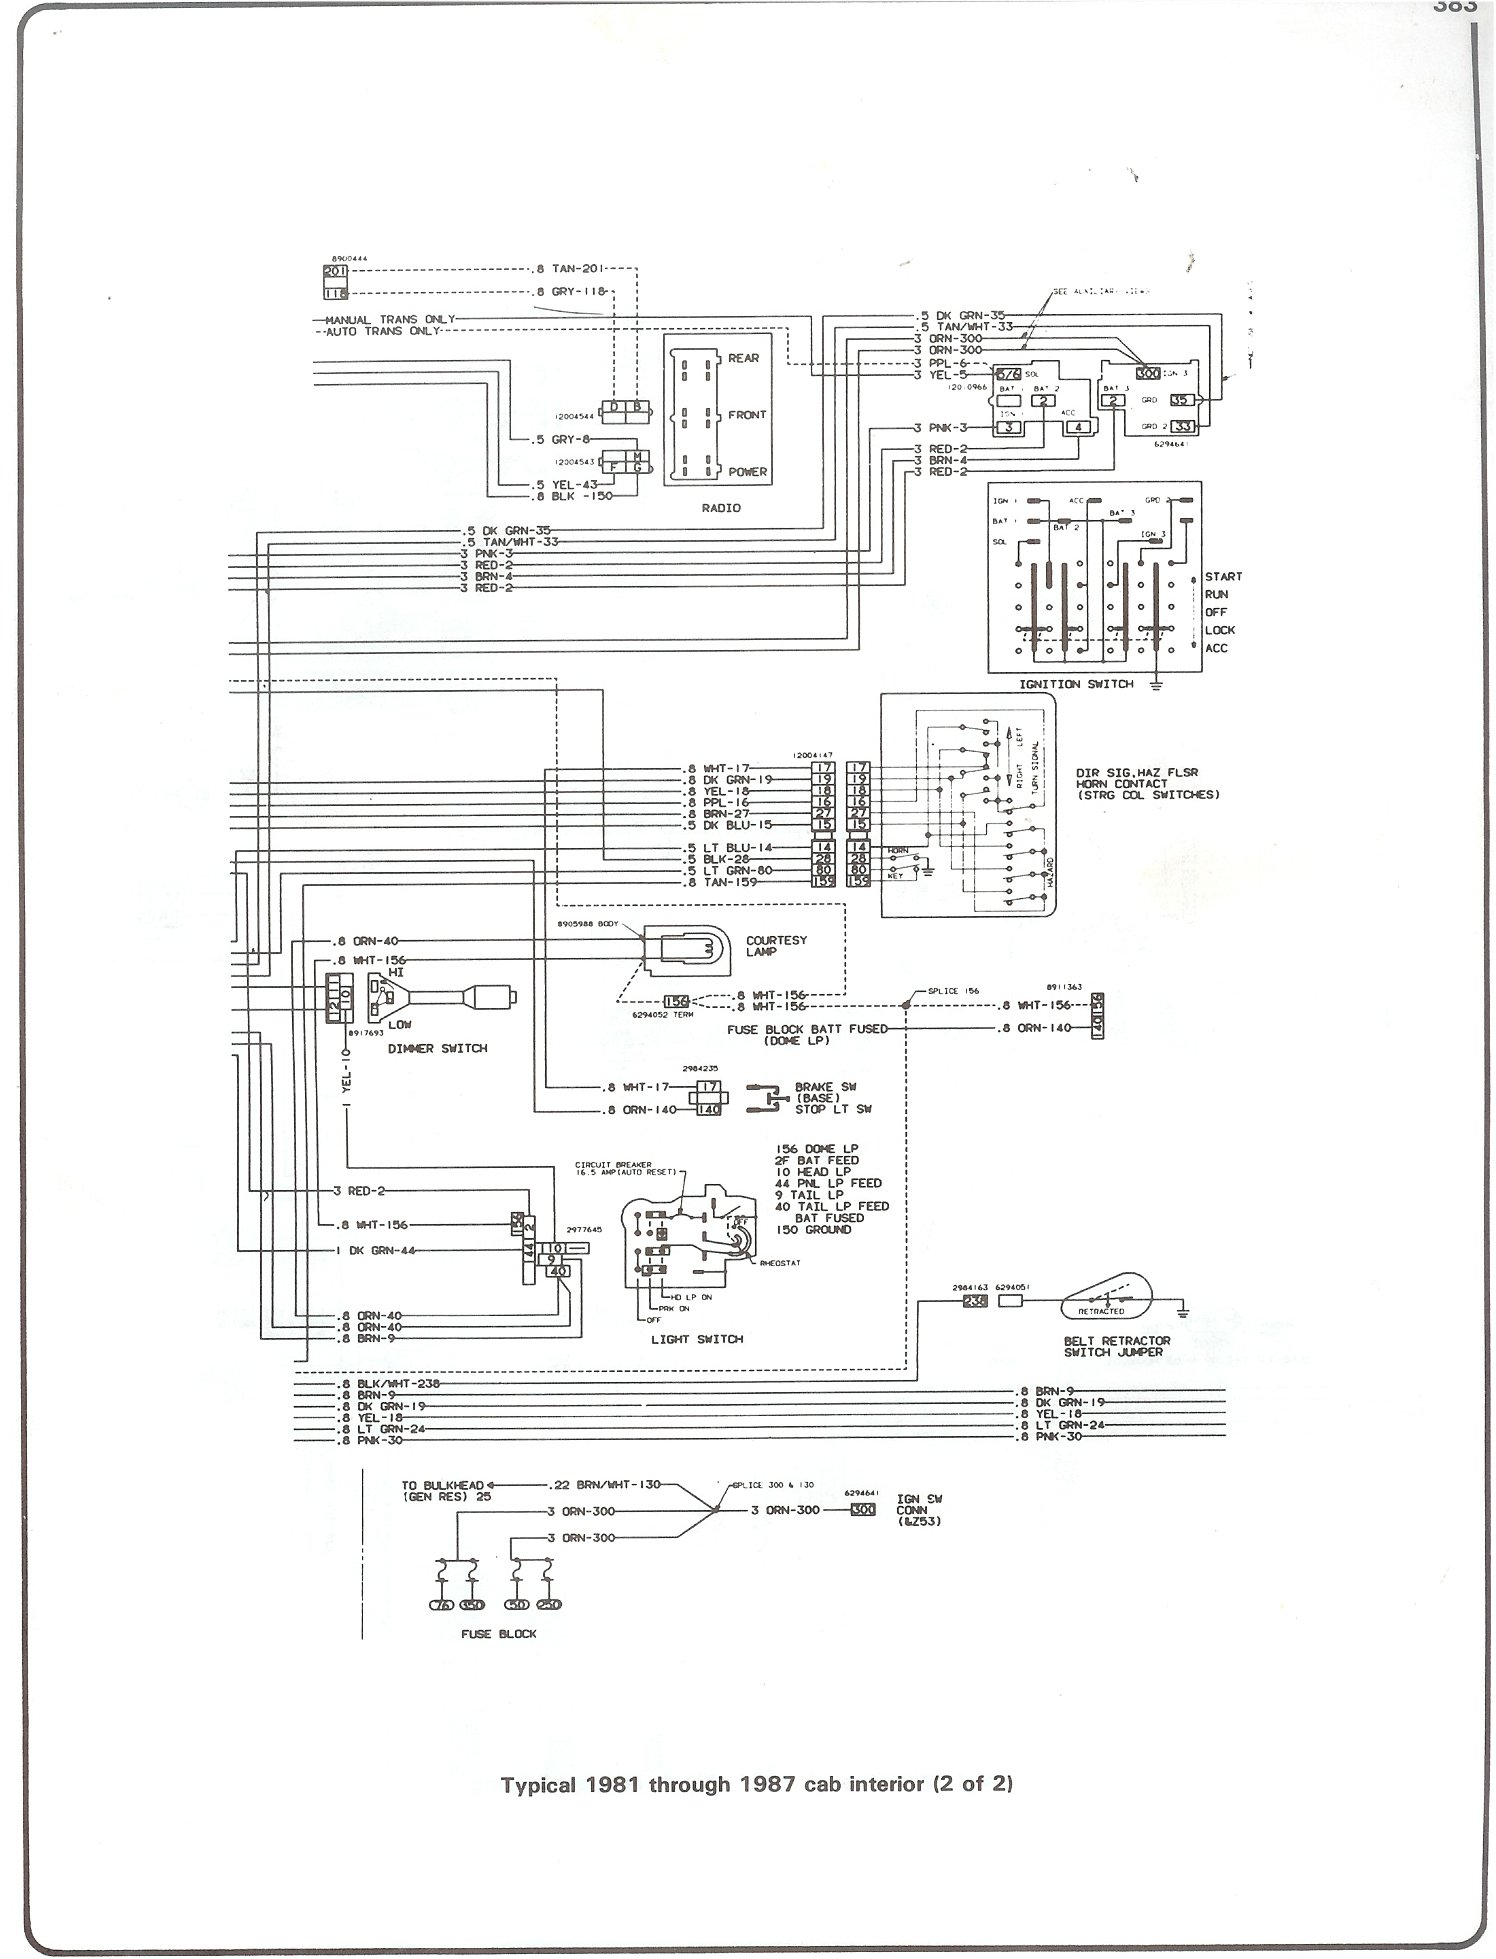 81 87_cab_inter_pg2 electrical diagrams chevy only page 2 truck forum  at fashall.co